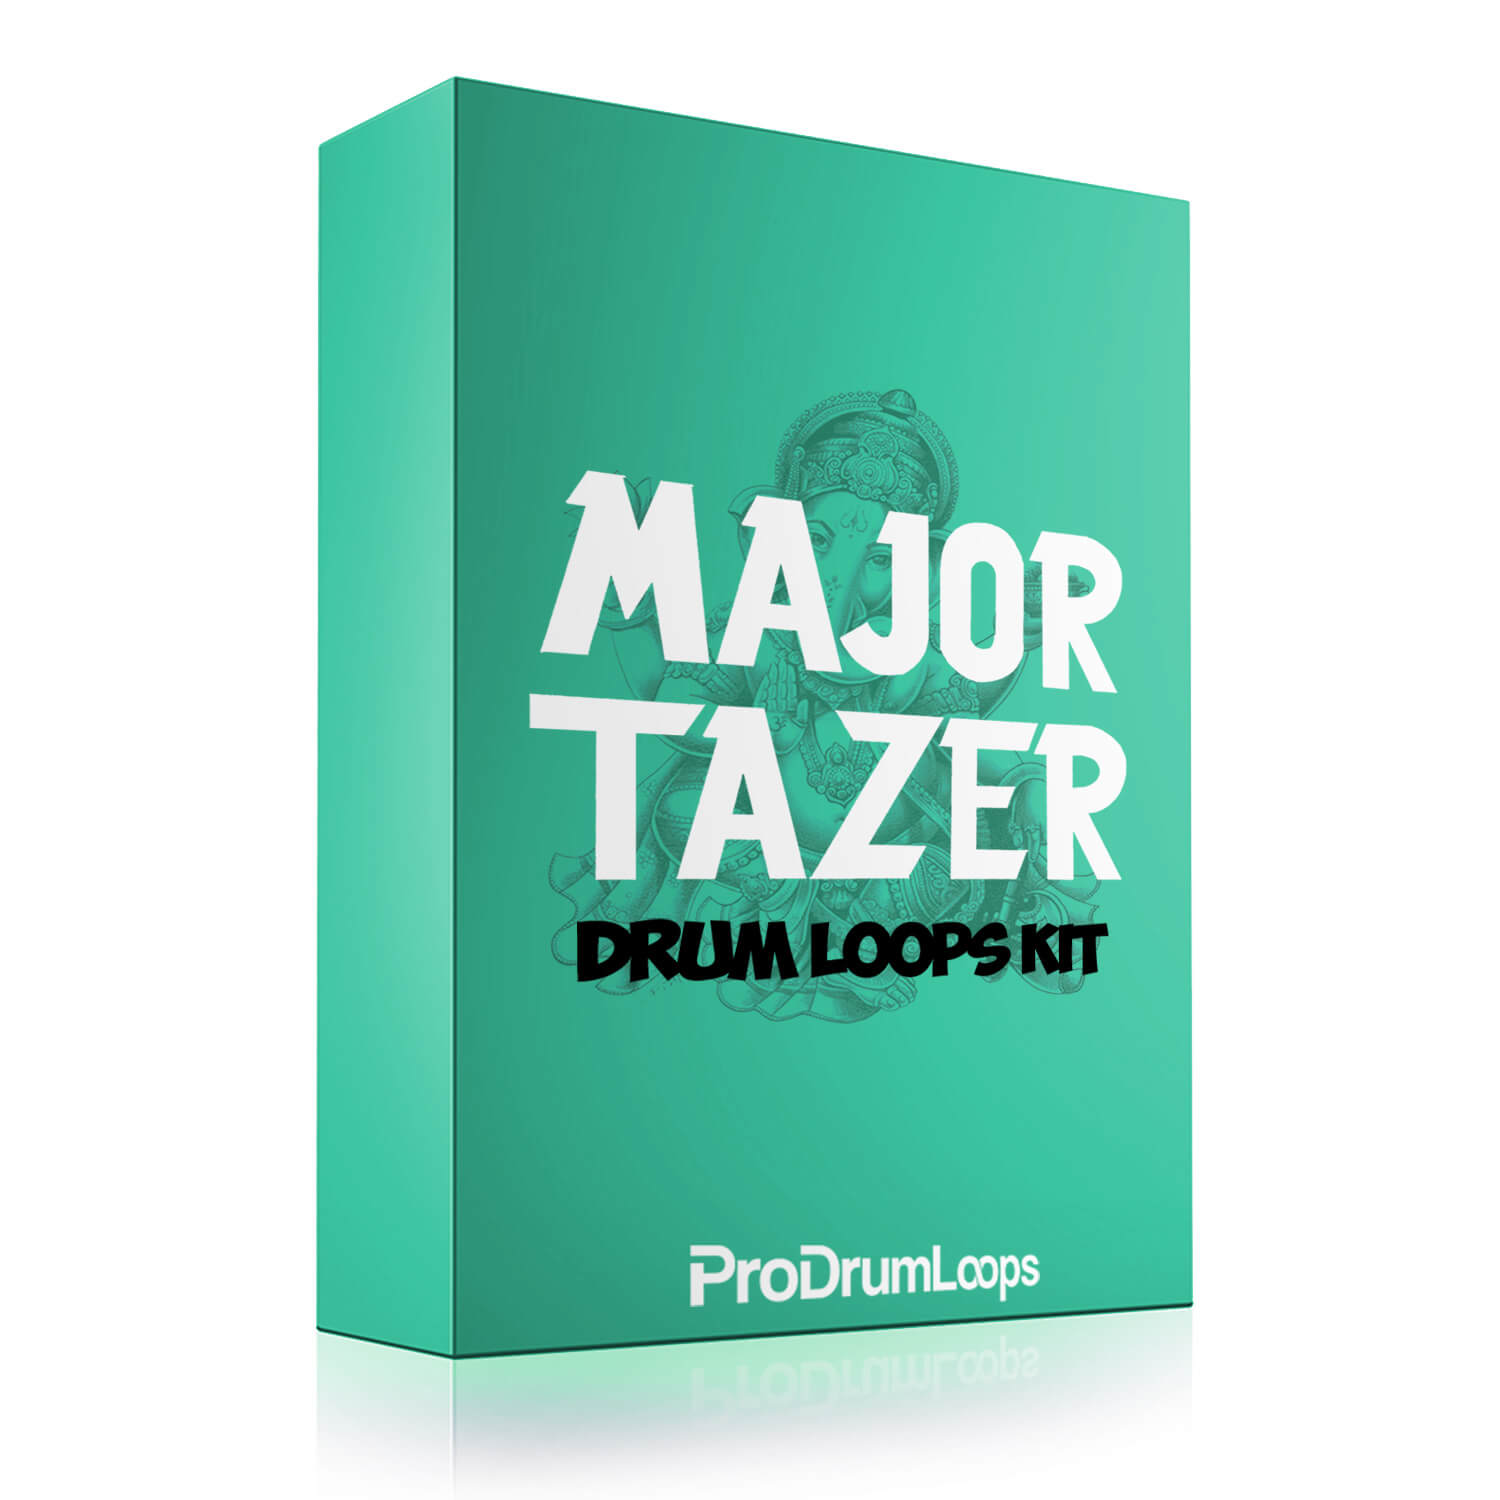 Major Tazer Drum Loops Kit